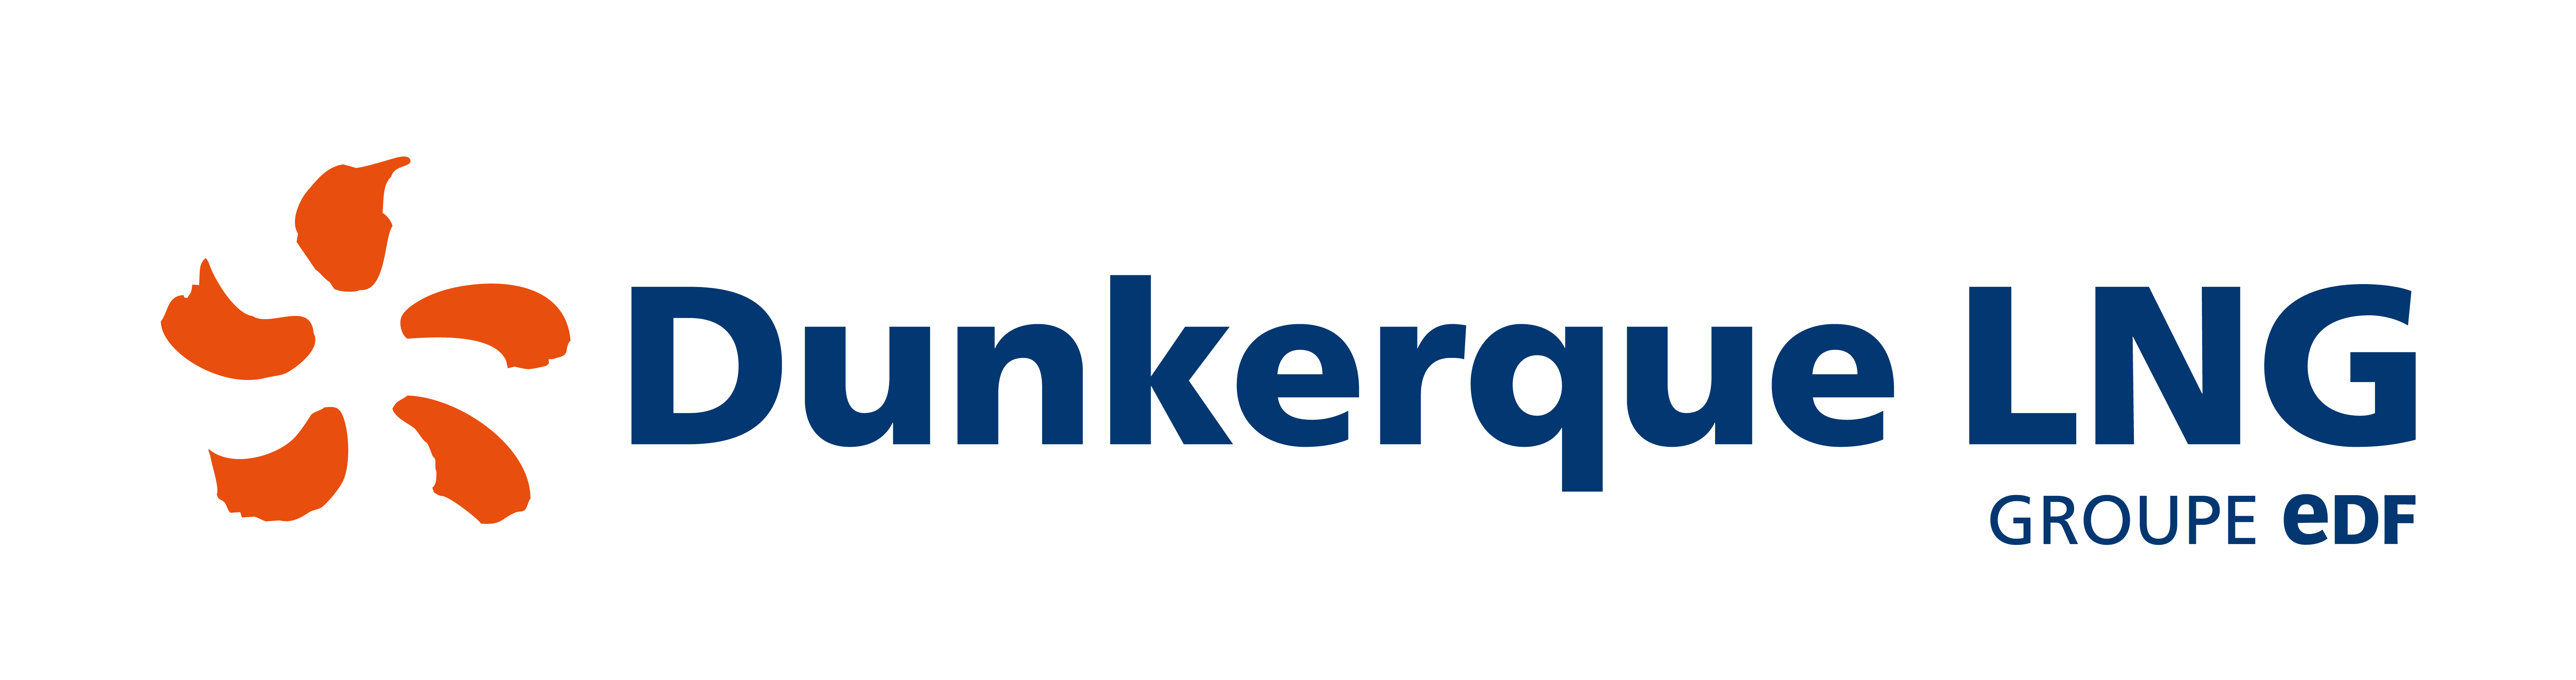 DUNKERQUE LNG - EDF